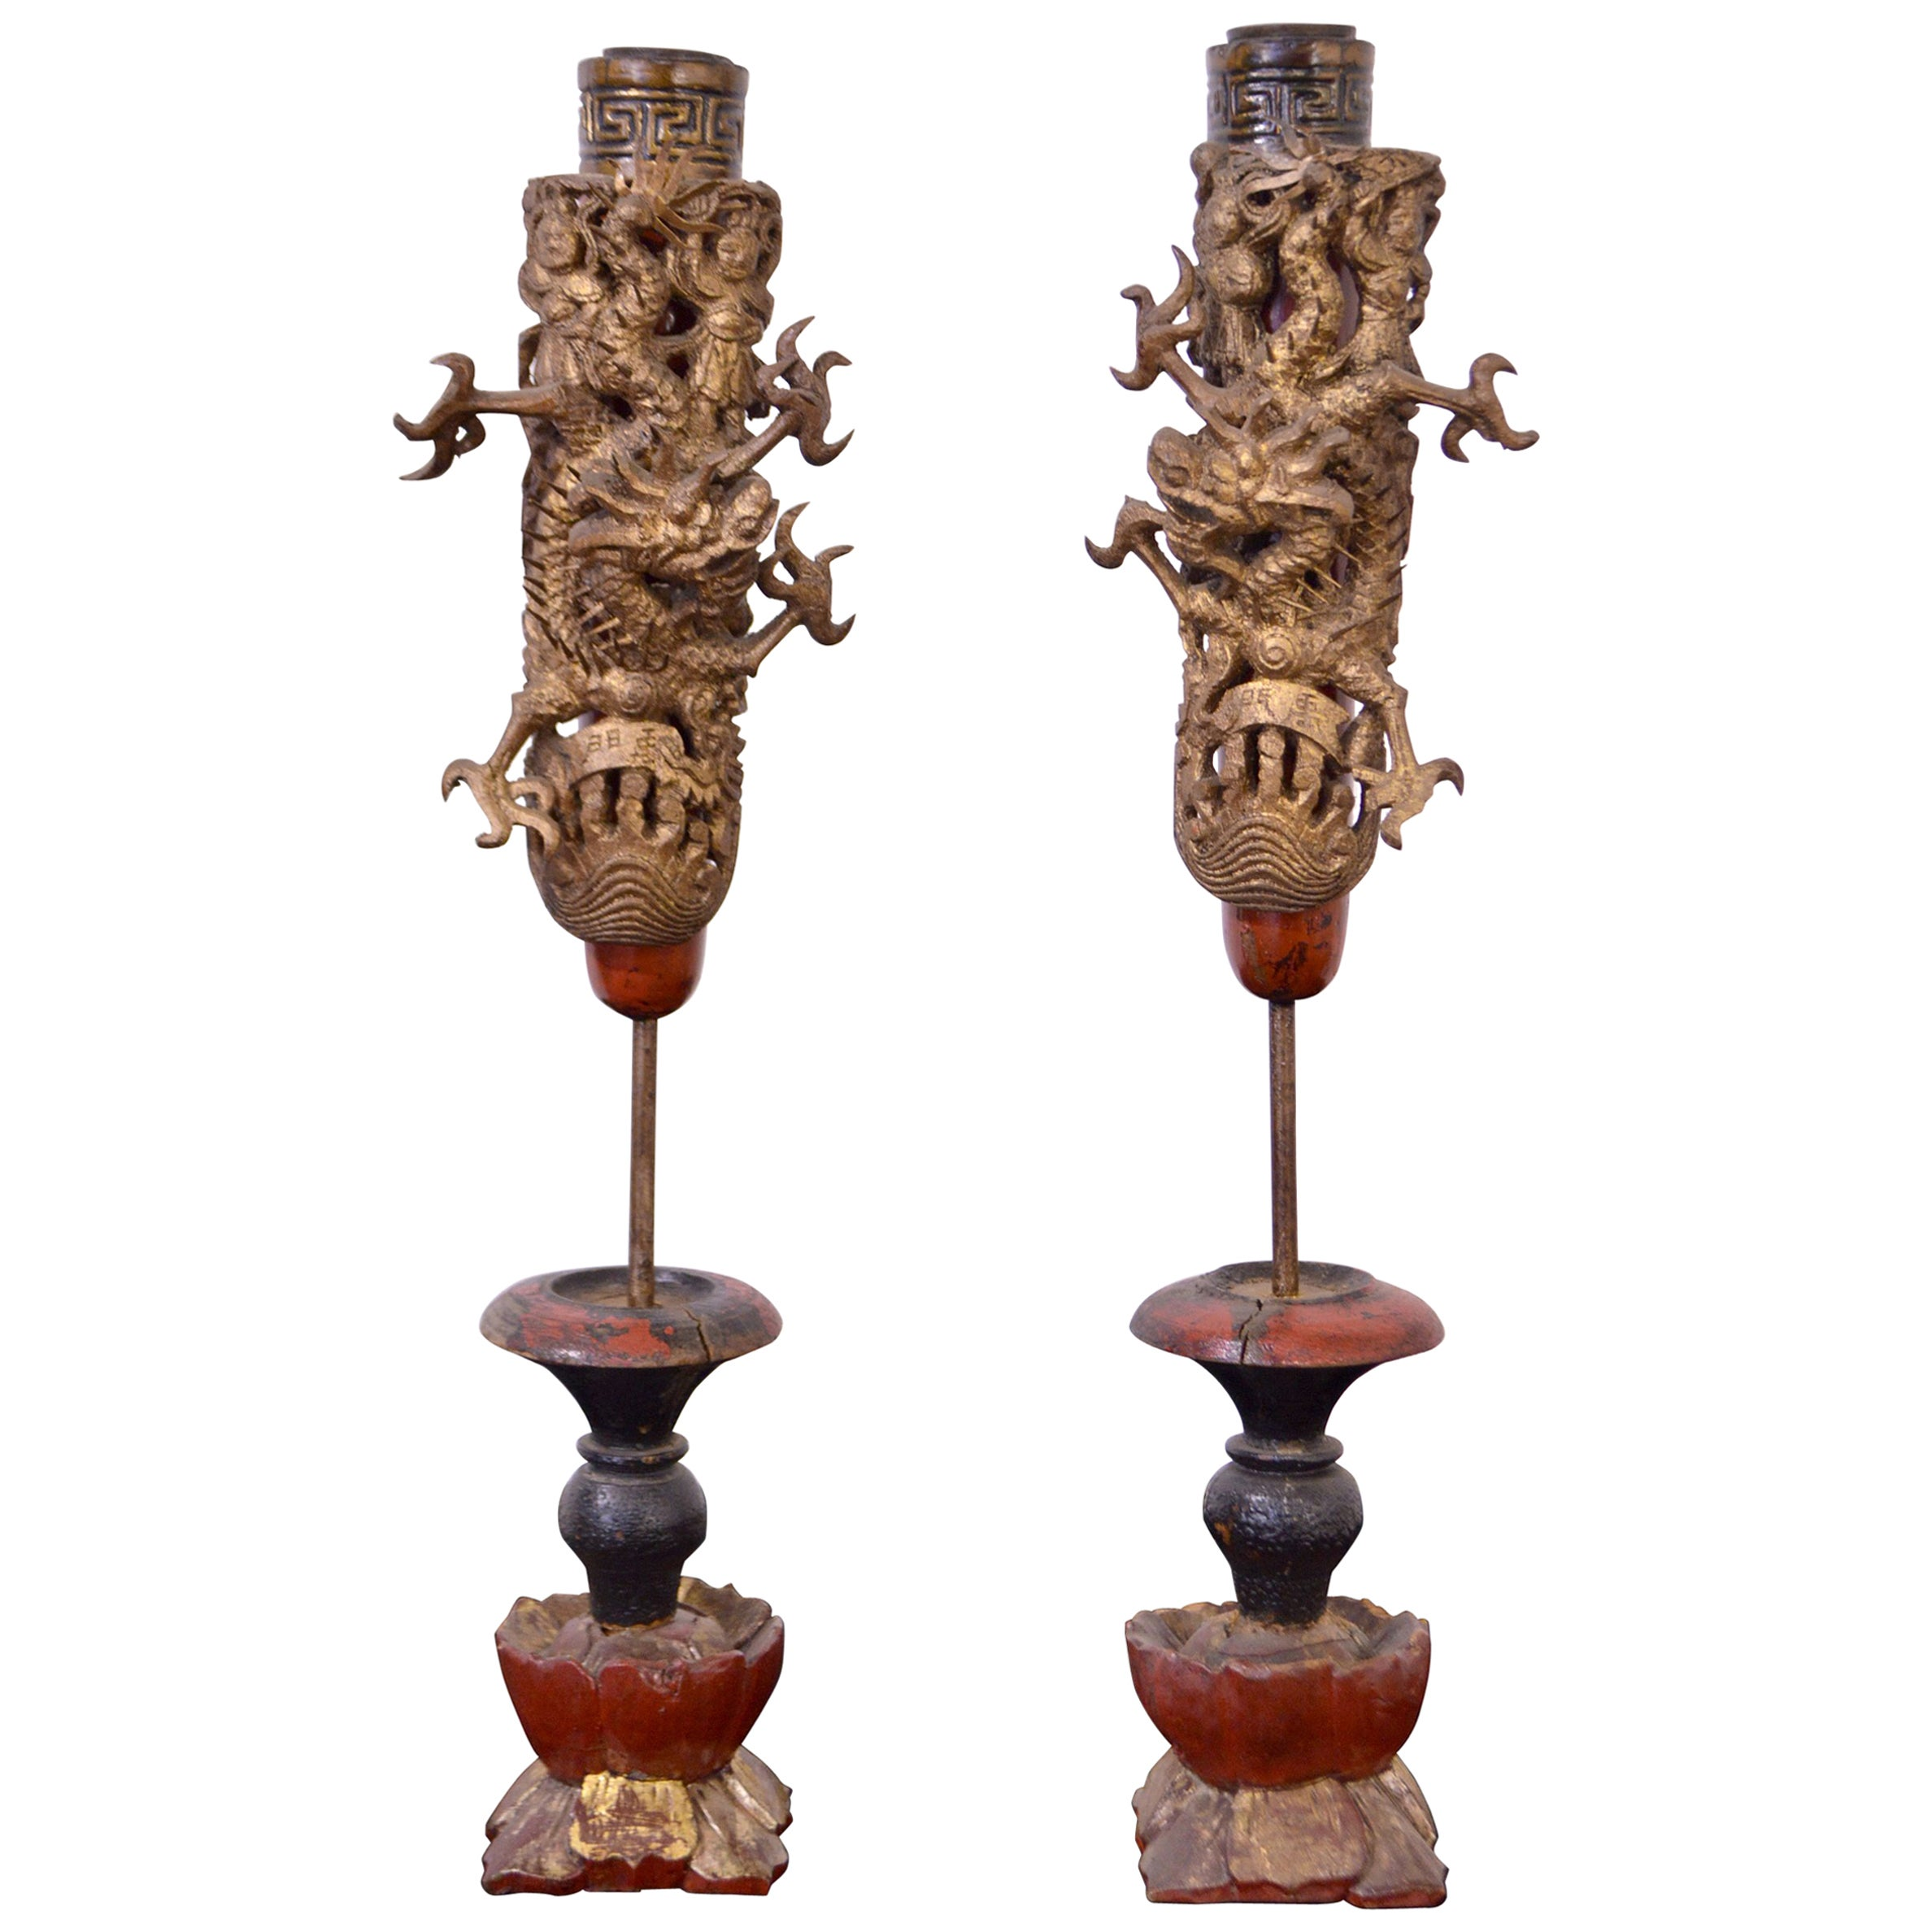 19th Century Wooden Candleholders